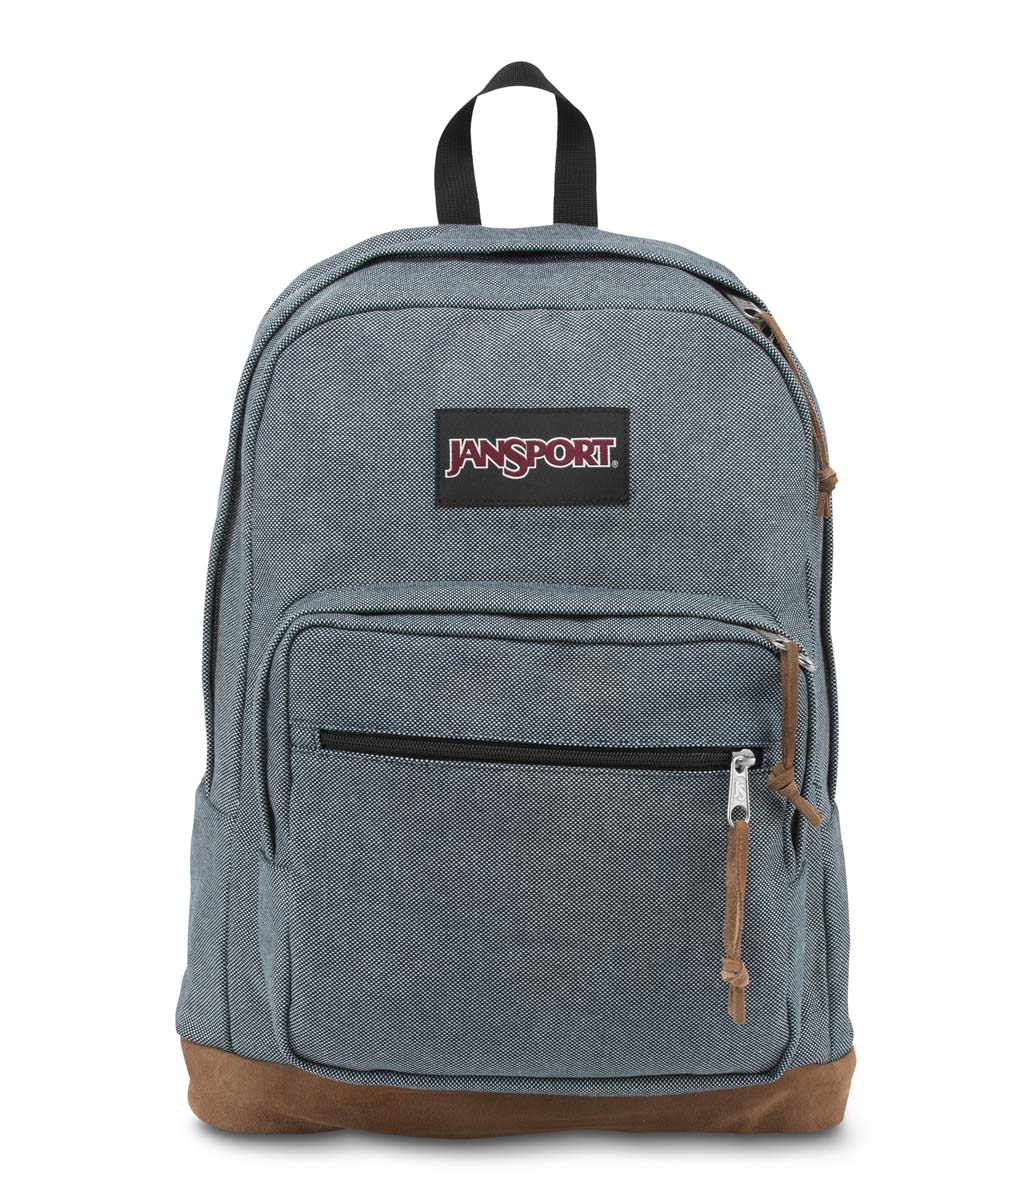 JanSport กระเป๋าเป้ รุ่น Right Pack Expressions - Blue Micro Check Denim